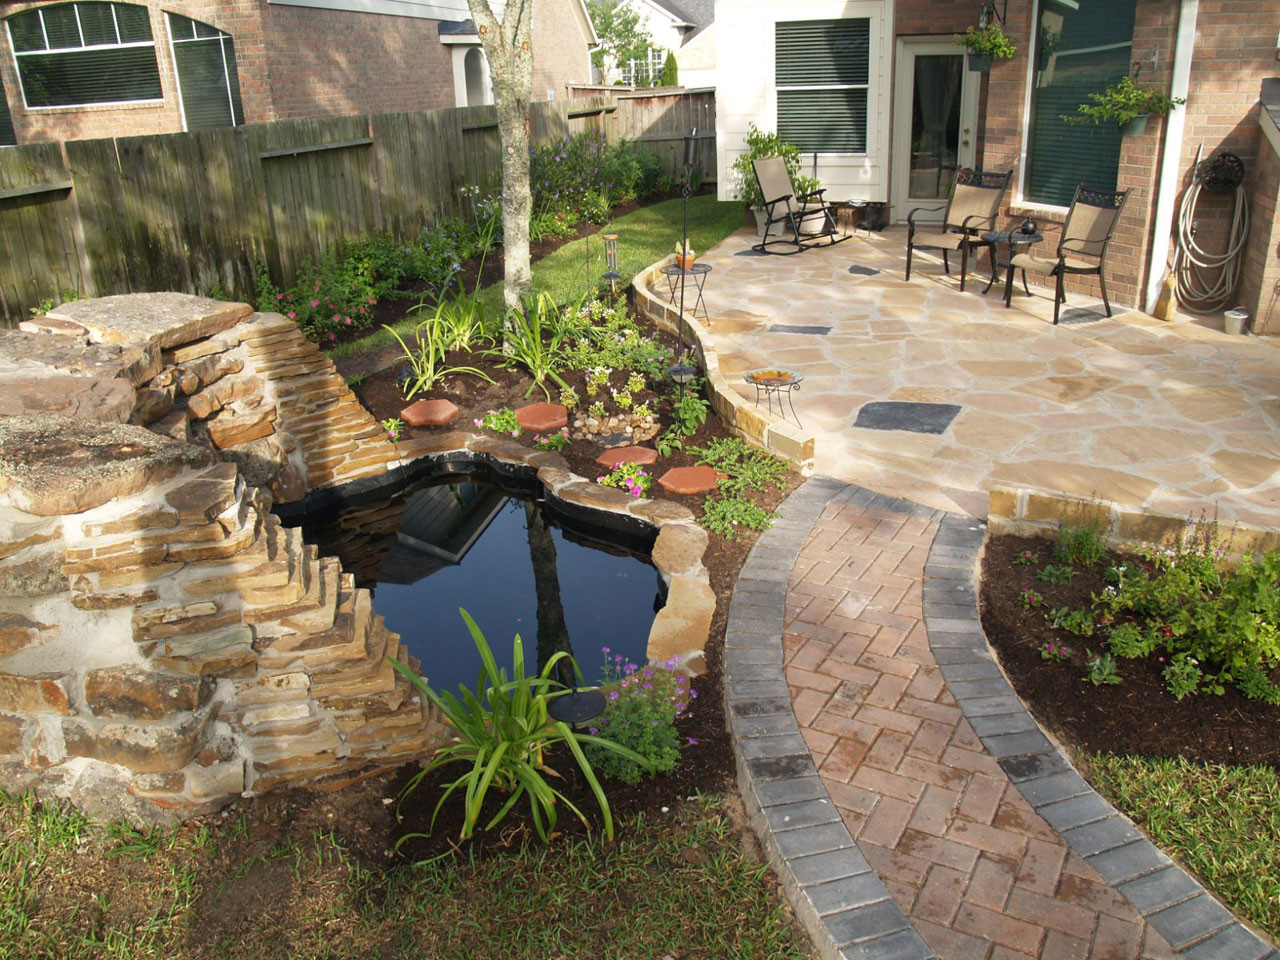 Backyard Ideas For Small Yard  Small Backyard Landscaping Concept to Add Cute Detail in